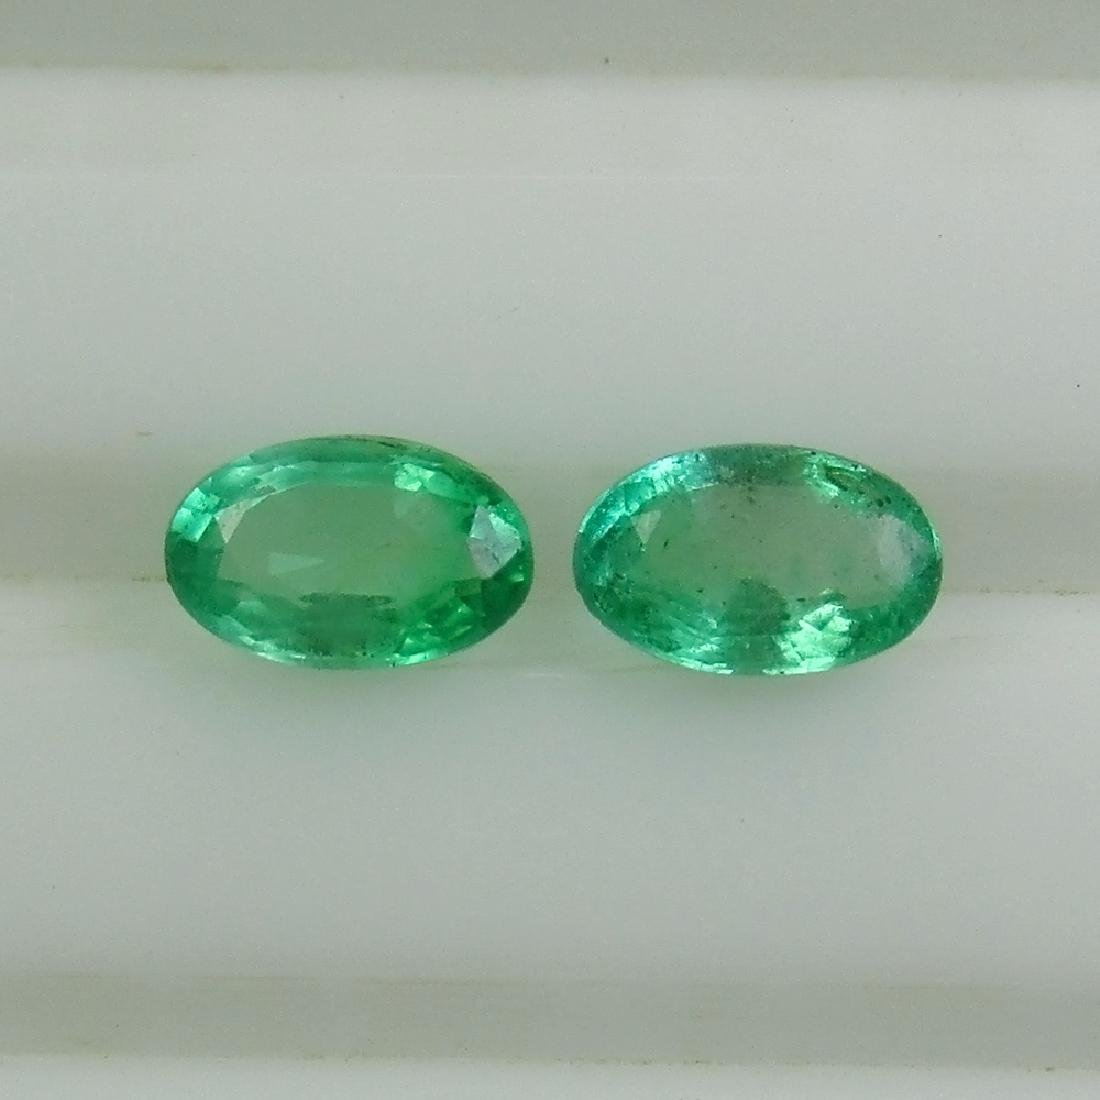 0.48 Ctw Natural Zambian Emerald Matching Oval Pair